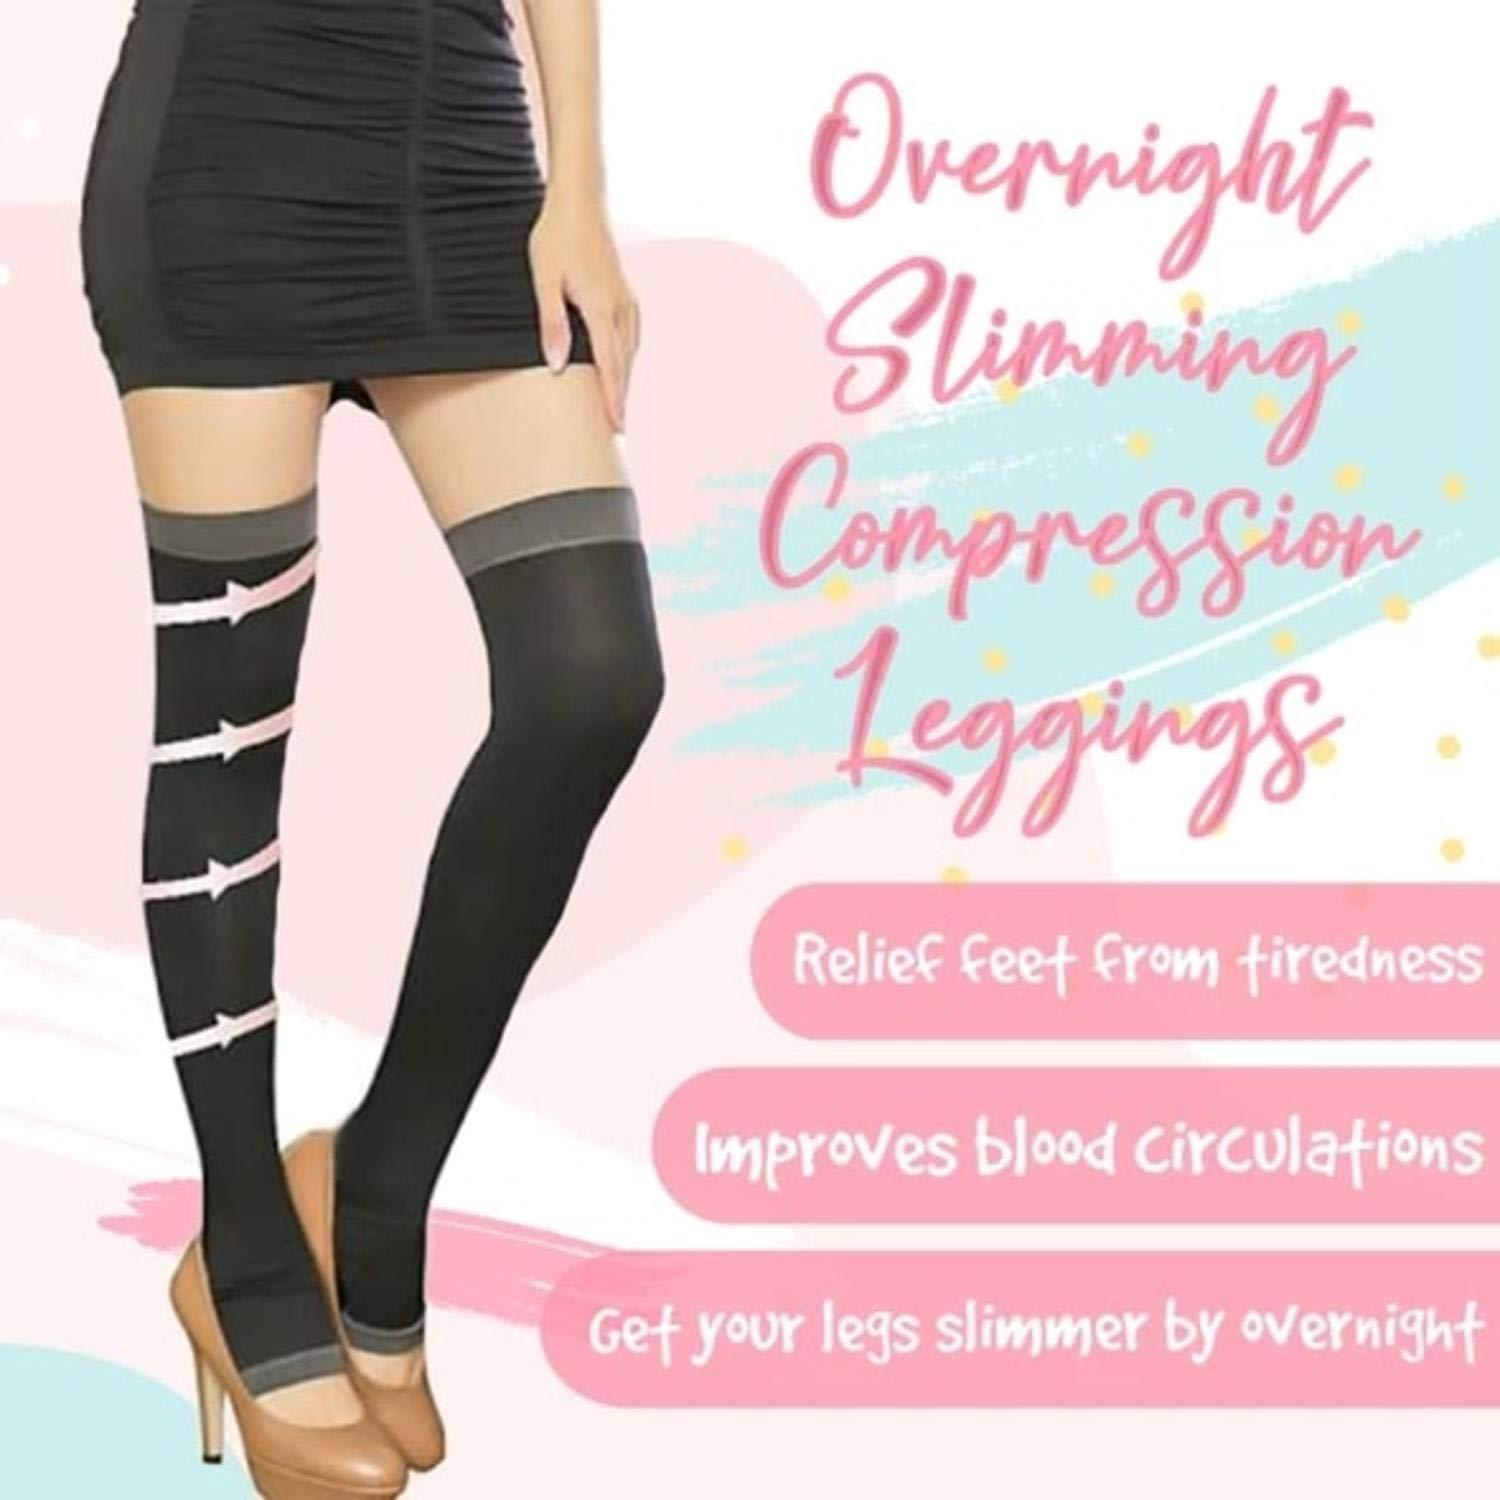 Overnight Slimming Compression Leggings (50% Off - Holiday Sale)